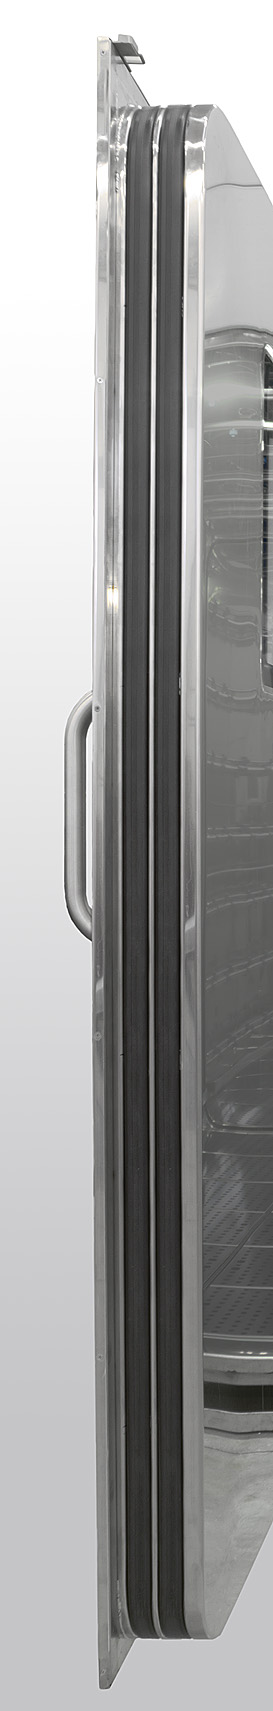 DeconLock inflatable double gasket door.jpg